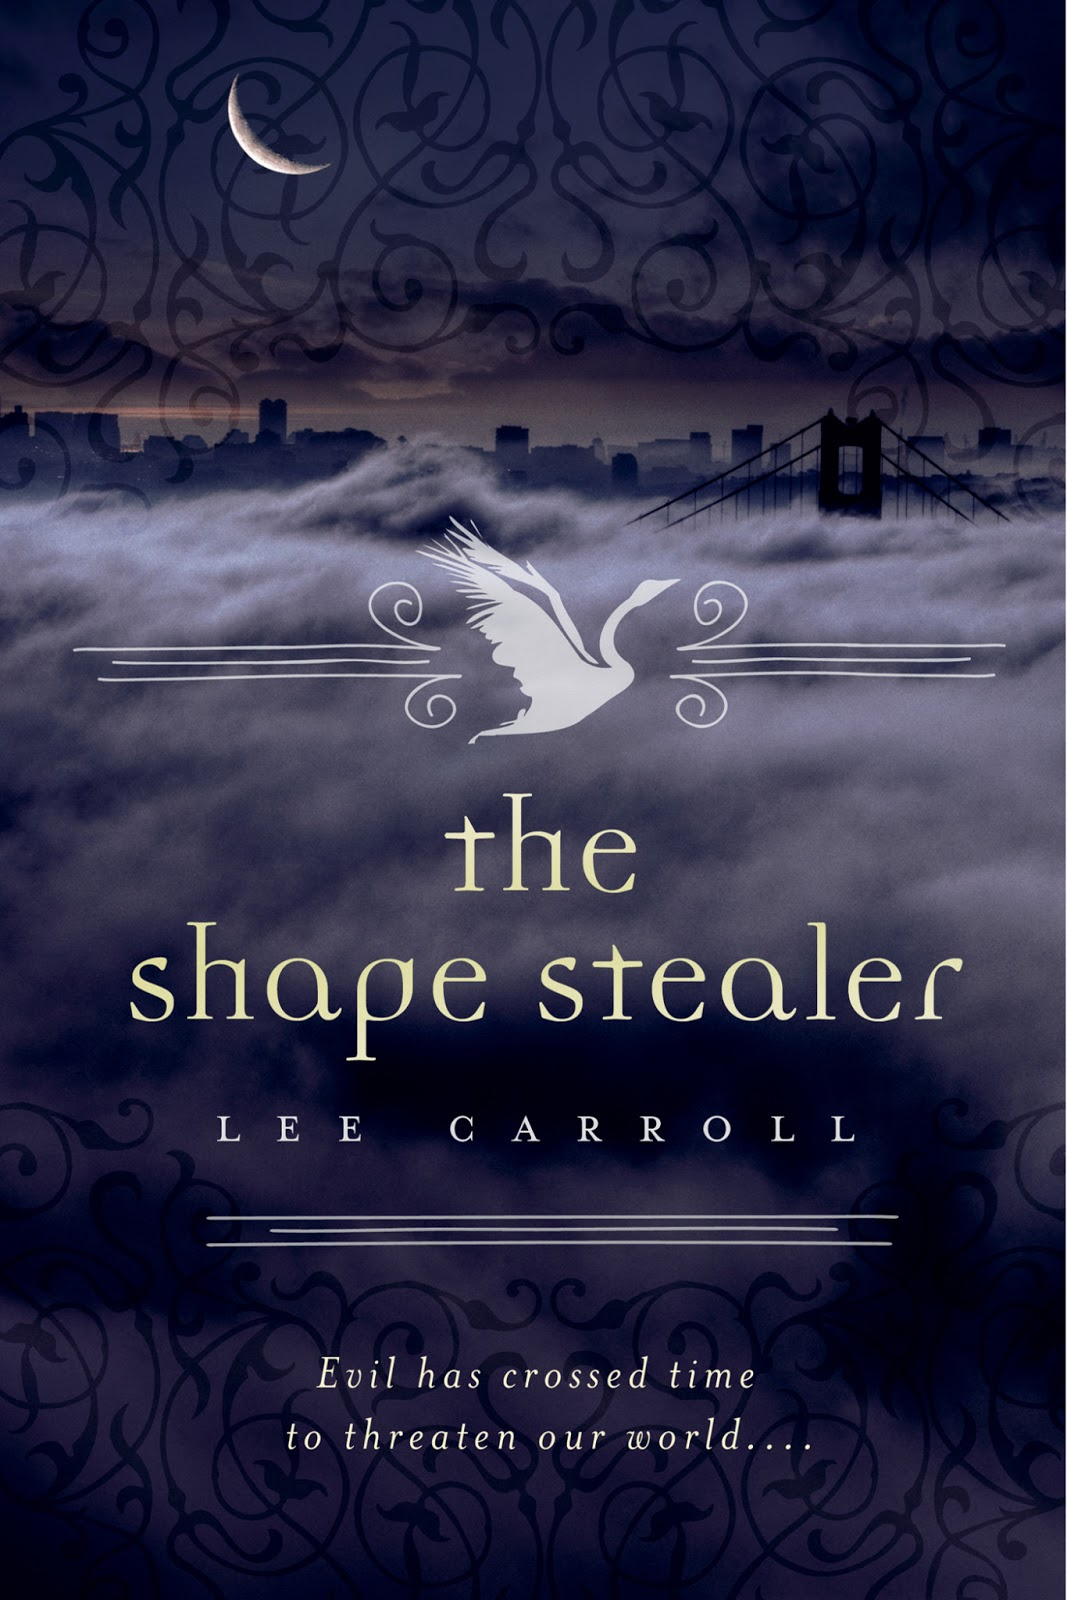 Carol Goodman And Lee Slonimsky Better Know As Lee Carroll Will Be  Looking Forward To The Conclusion Of Their Urban Fantasy Trilogy With The  Shape